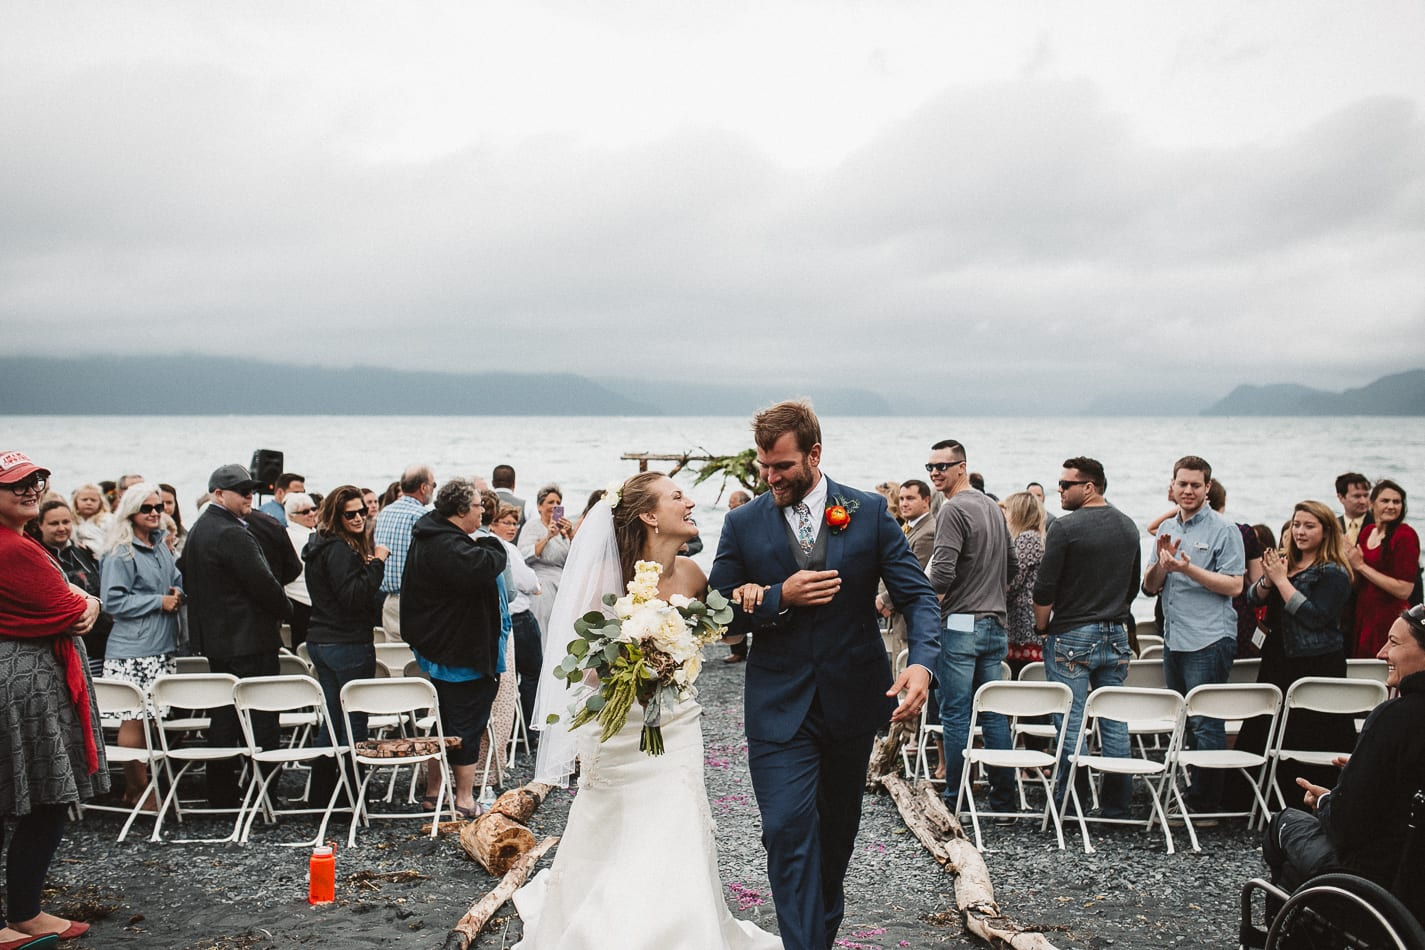 seward-alaska-beach-wedding-photographer-62